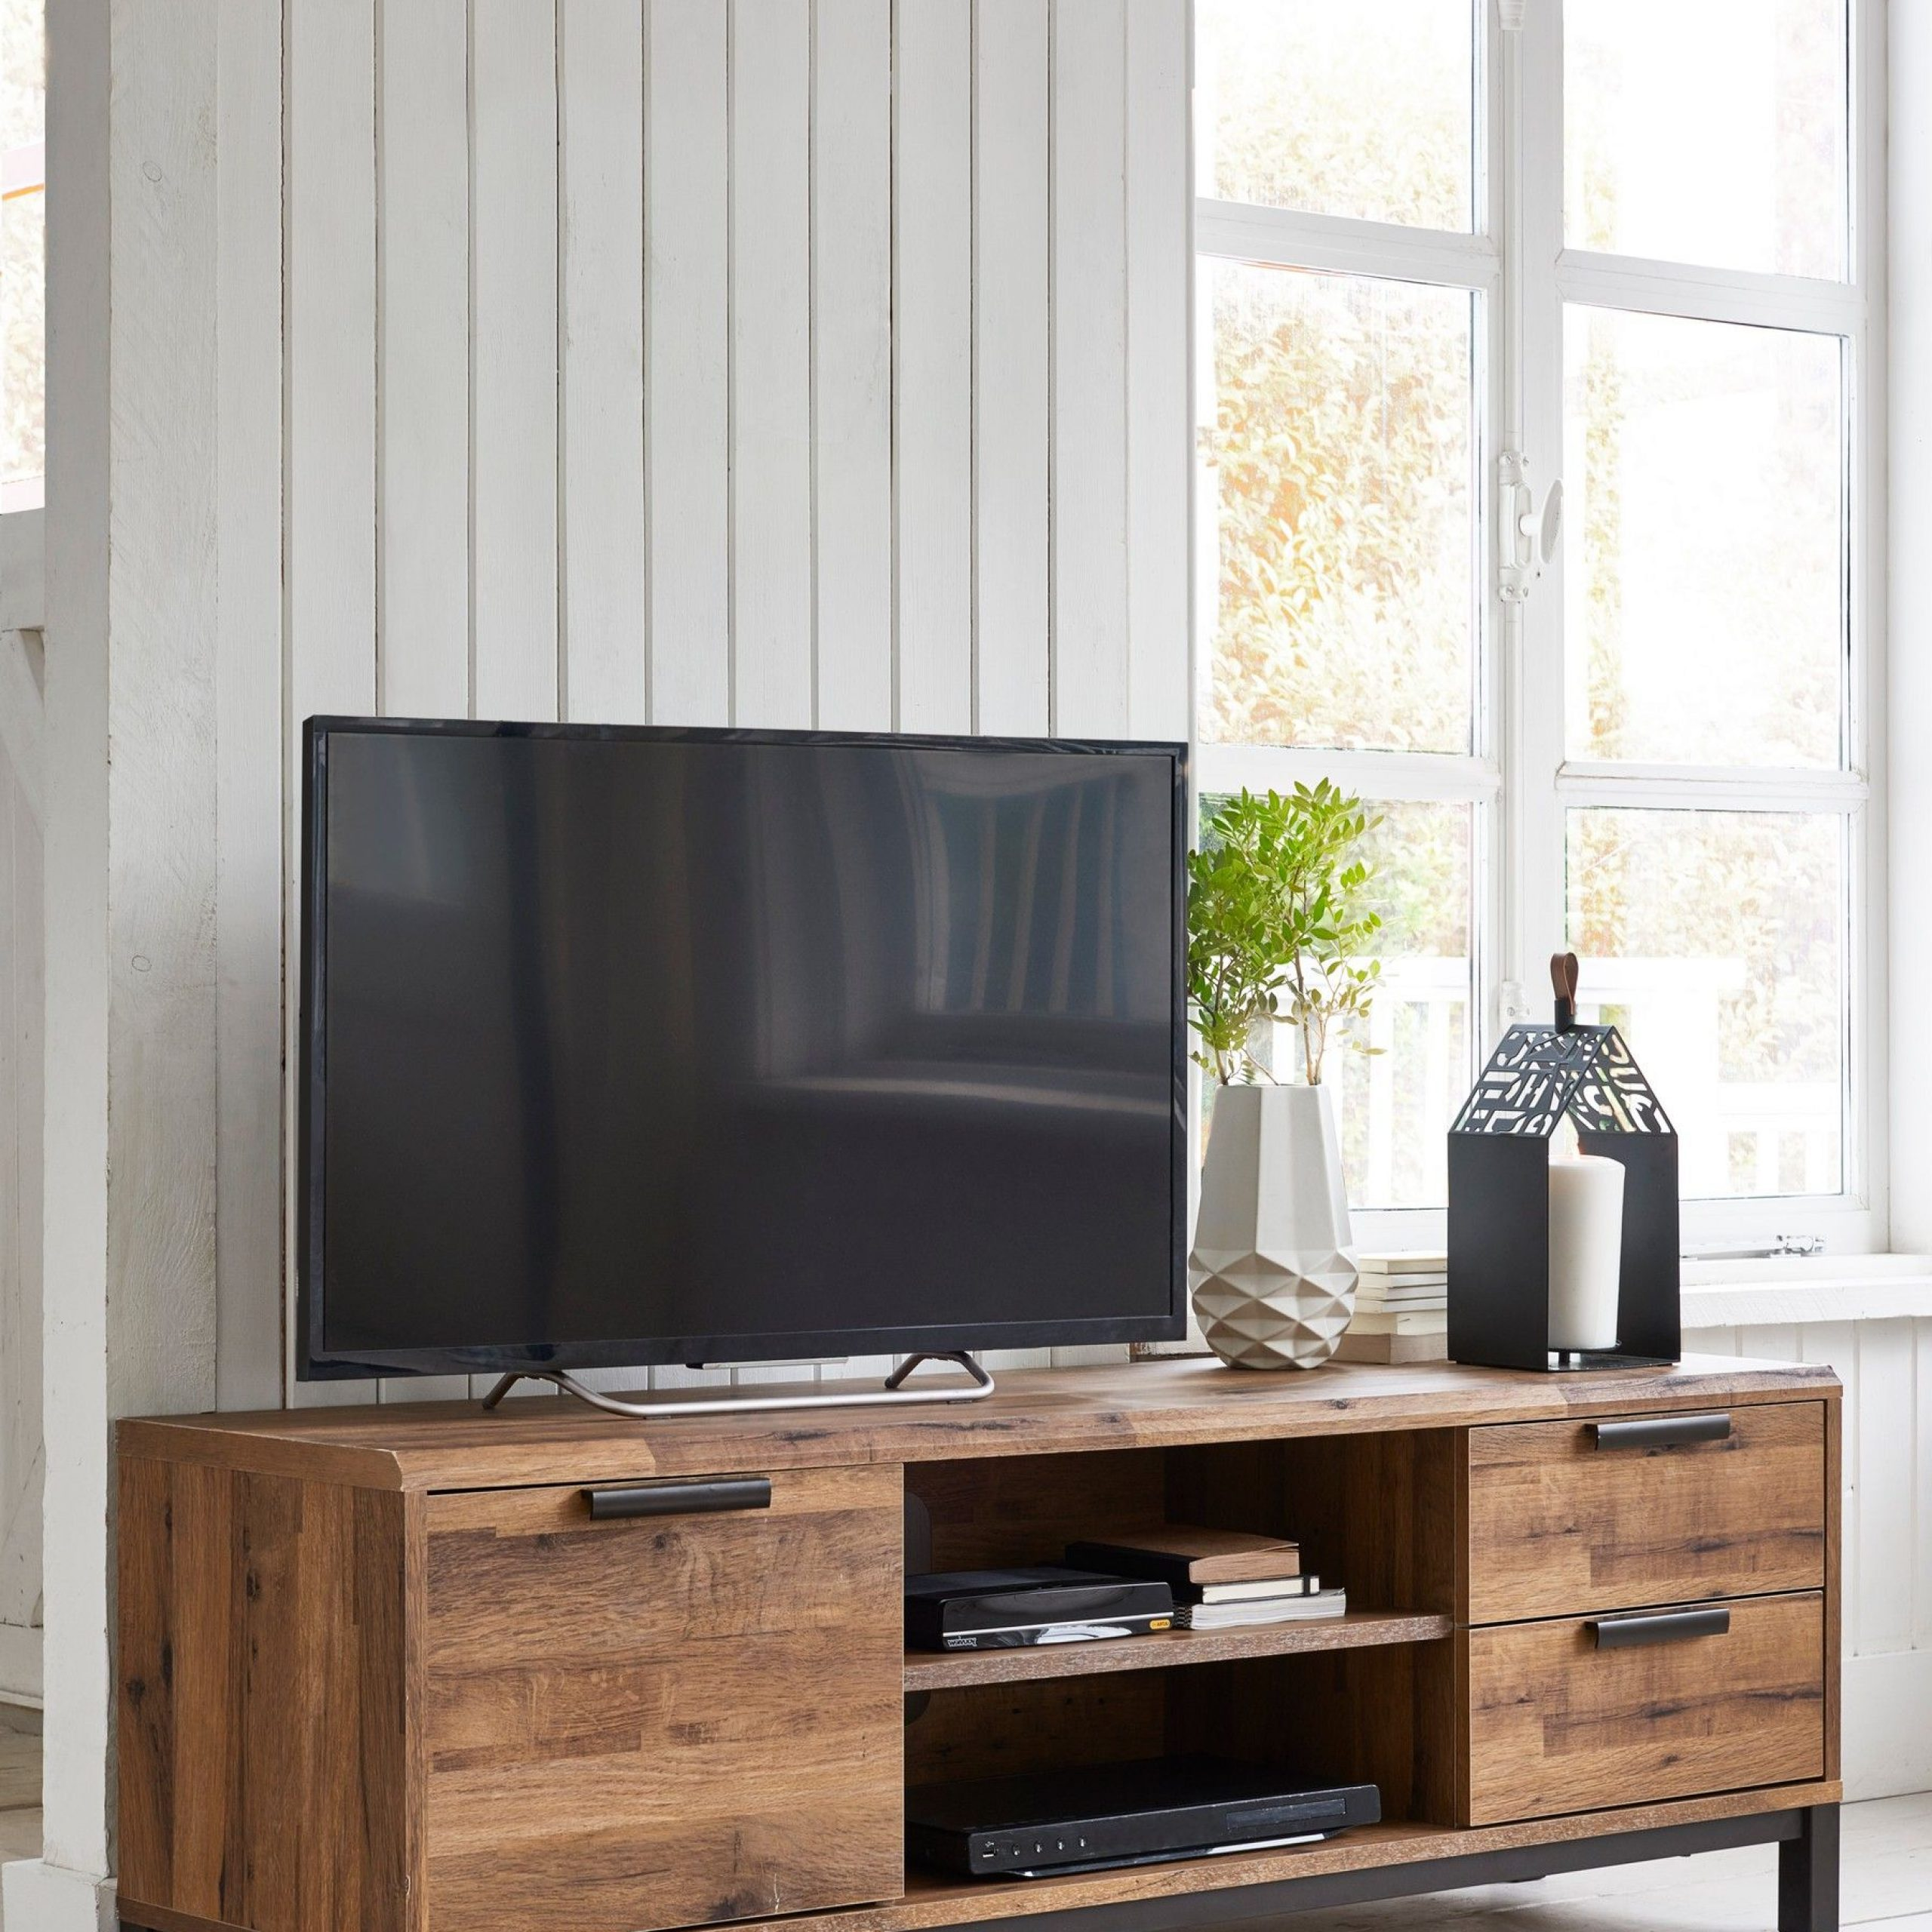 Bronx Wide Tv Stand   Living Room Furniture, Entertainment Regarding Harbor Wide Tv Stands (View 14 of 20)